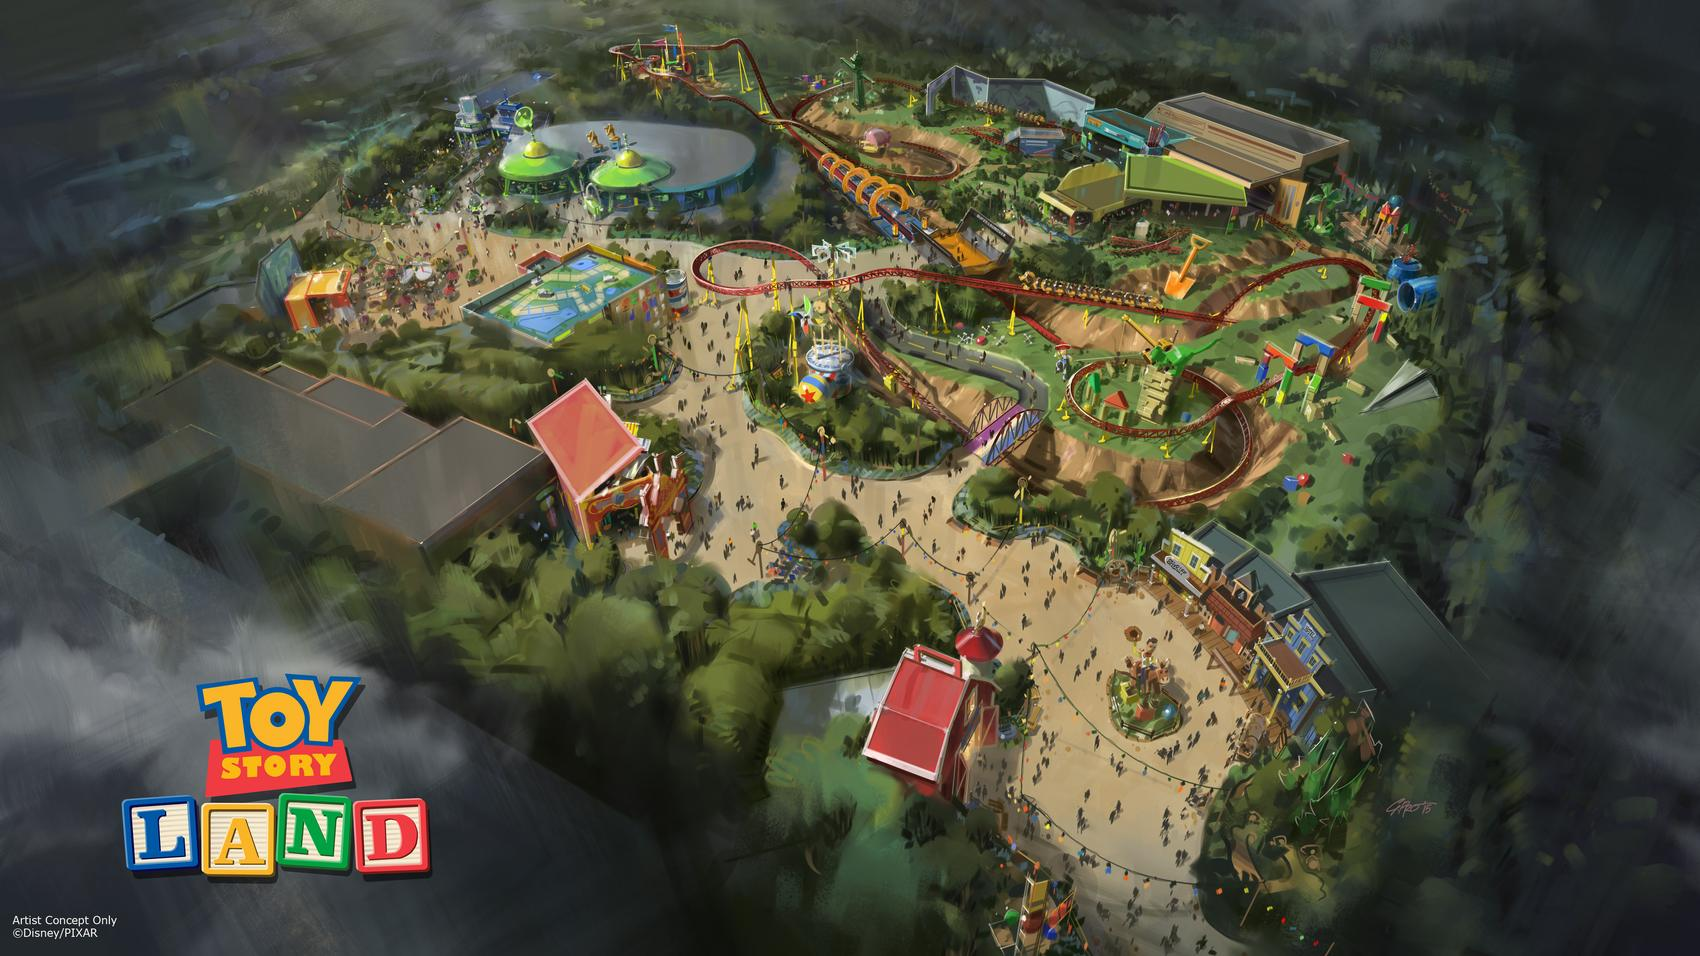 Toy Story Land at DisneyÕs Hollywood Studios in Florida -- The reimagining of Disney's Hollywood Studios will take guests to infinity and beyond, allowing them to step into the worlds of their favorite films, starting with Toy Story Land. This new 11-acre land will transport guests into the adventurous outdoors of Andy's backyard. Guests will think they've been shrunk to the size of Woody and Buzz as they are surrounded by oversized toys that Andy has assembled using his vivid imagination.  Using toys like building blocks, plastic buckets and shovels, and game board pieces, Andy has designed the perfect setting for this land, which will include two new attractions for any Disney park and one expanded favorite. (Disney Parks)